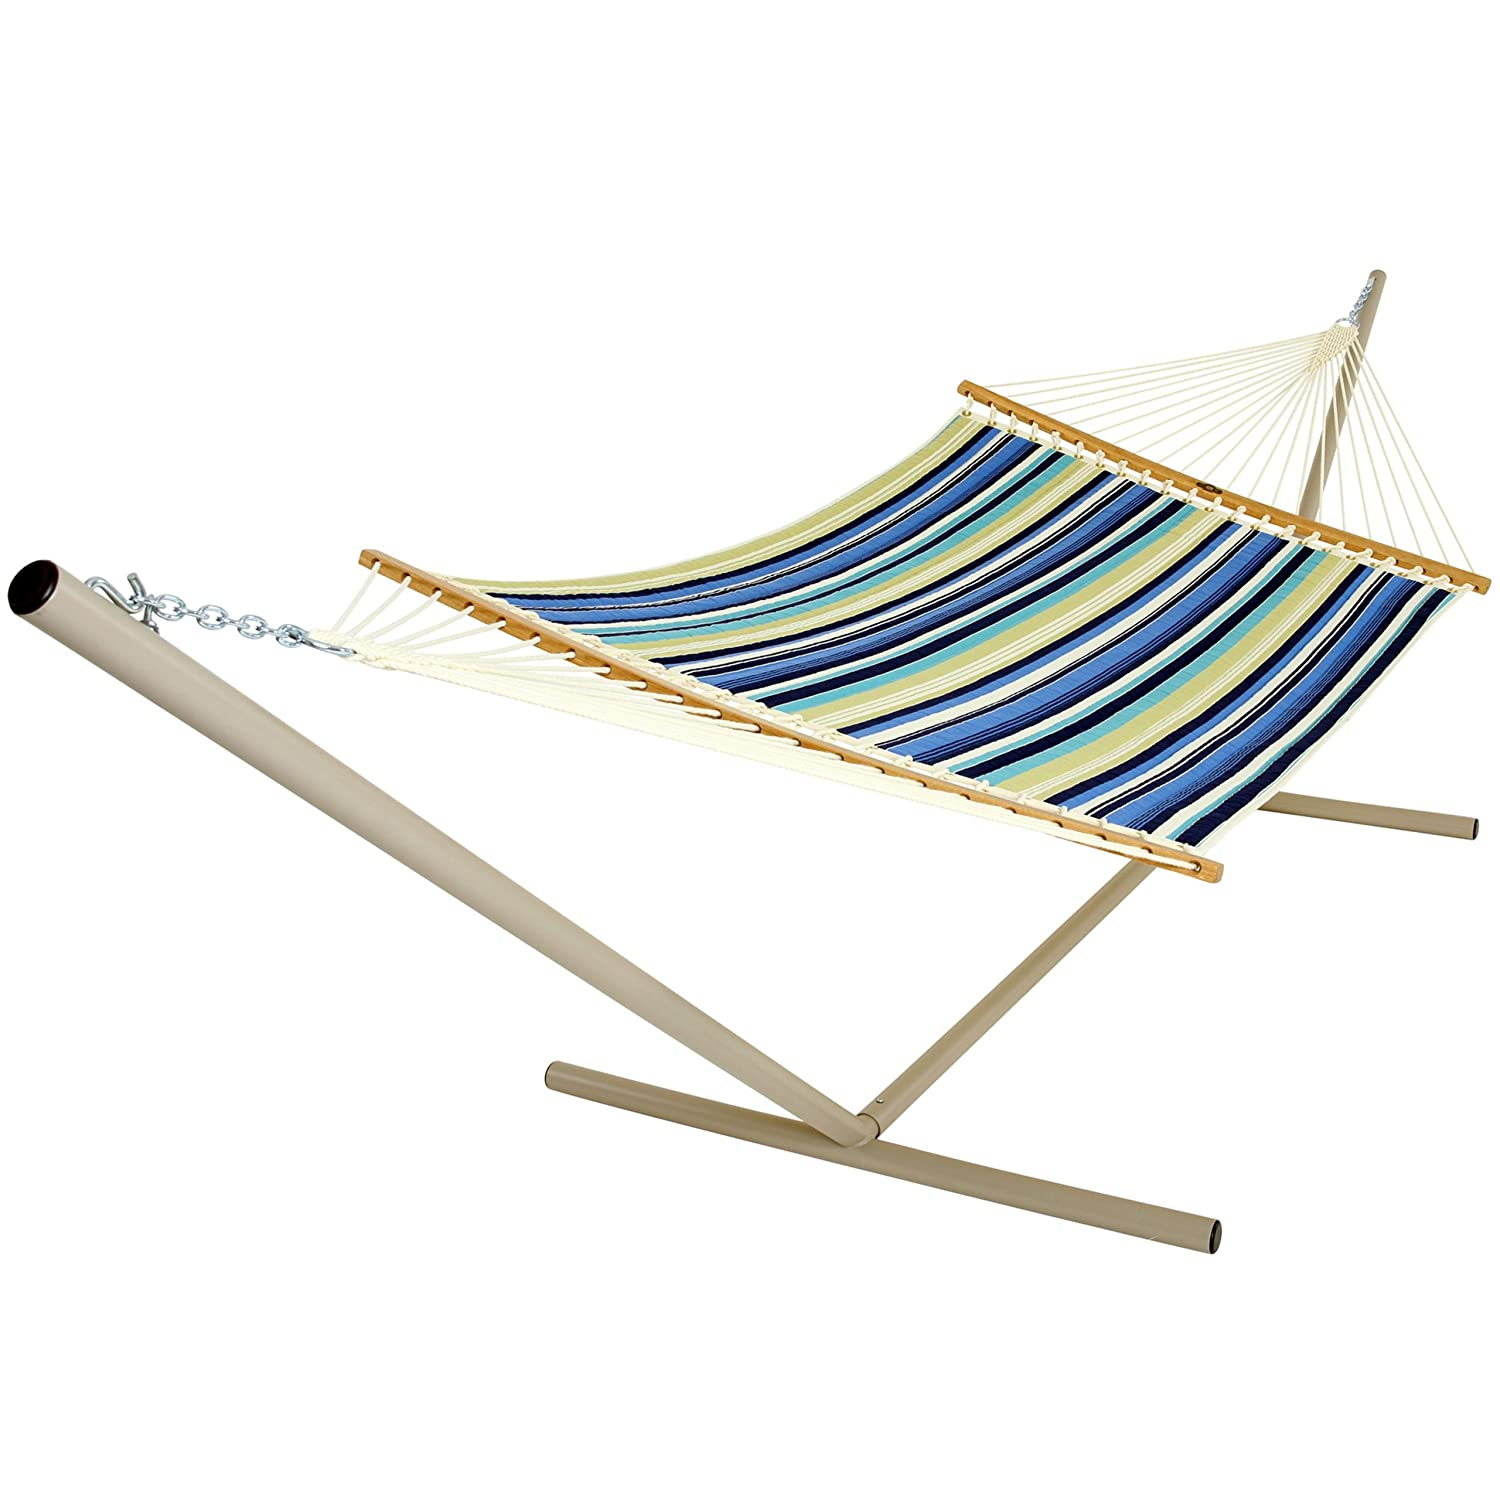 Amazon.com : Pawley's Island QBE01 Quilted Fabric Hammock, Beaches Stripe,  Large : Patio, Lawn & Garden - Amazon.com : Pawley's Island QBE01 Quilted Fabric Hammock, Beaches